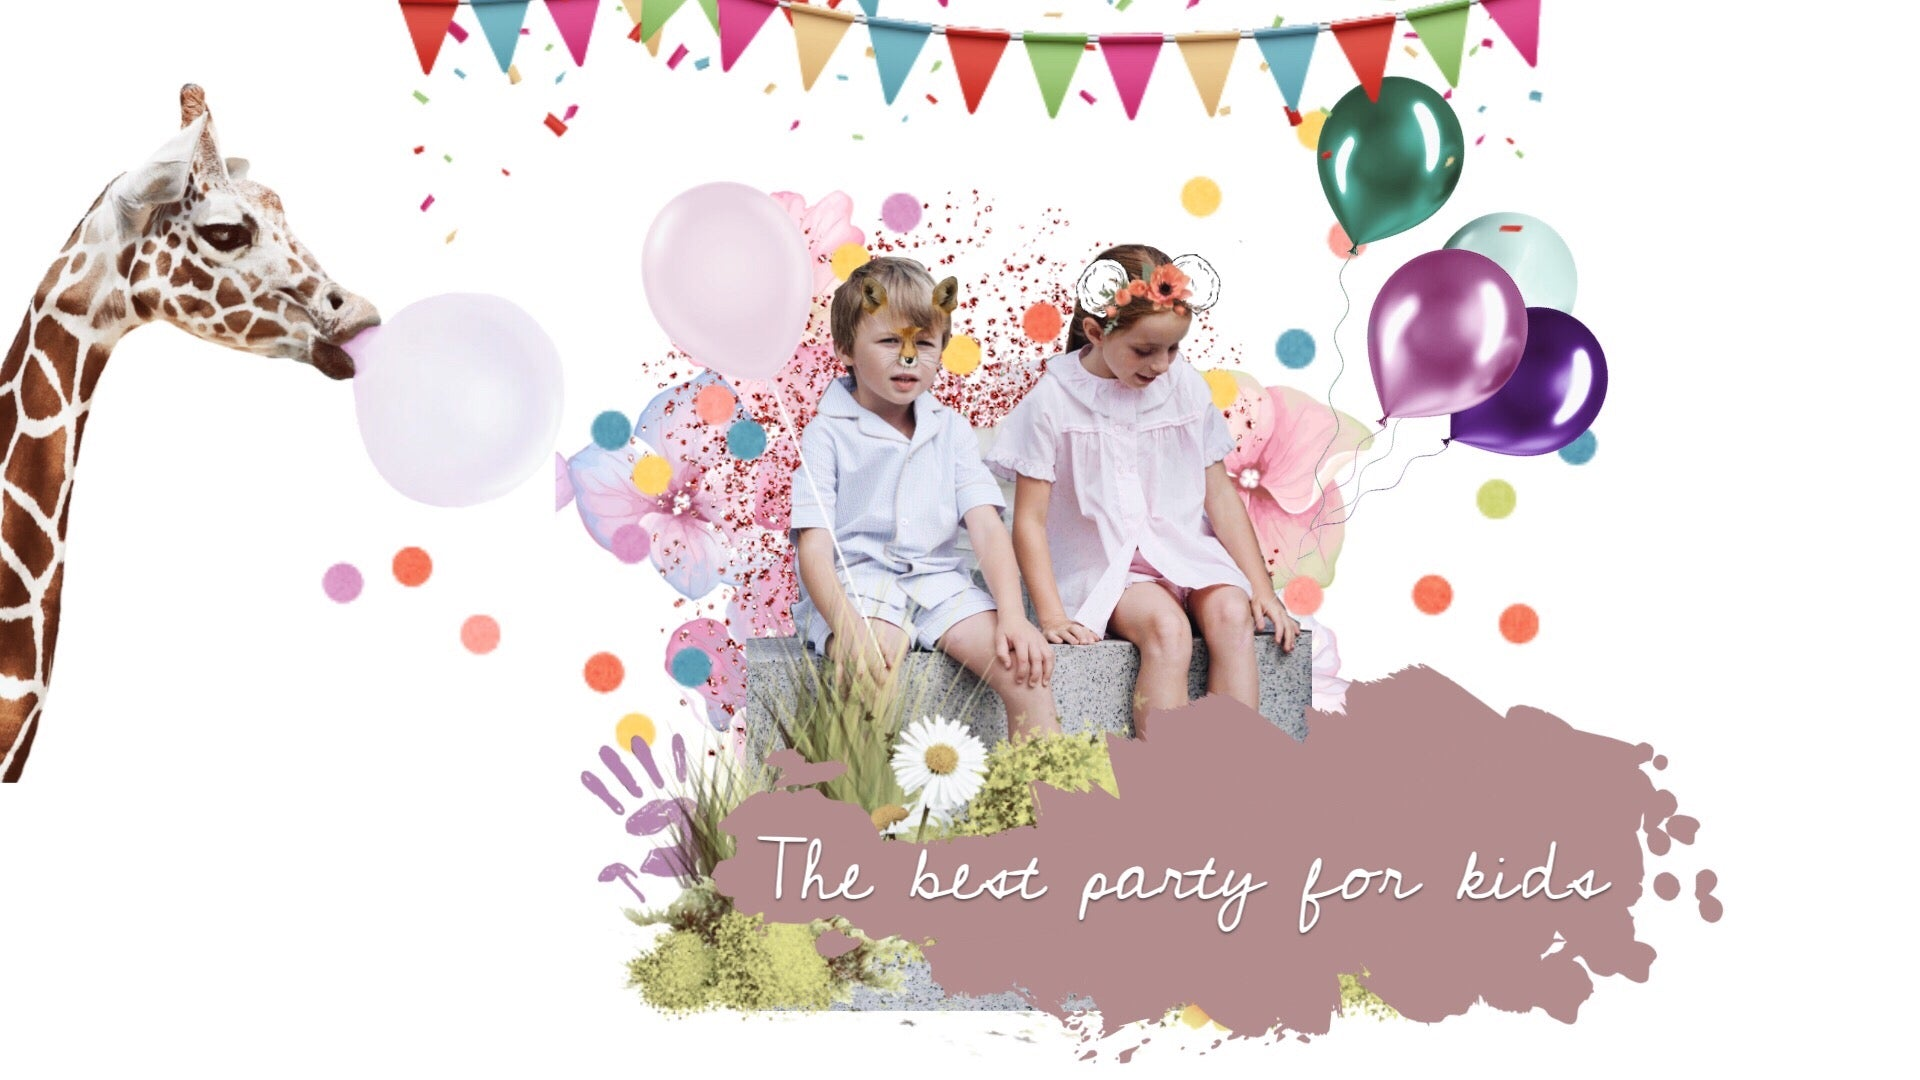 Tips for Throwing Fabulous Kids' Parties